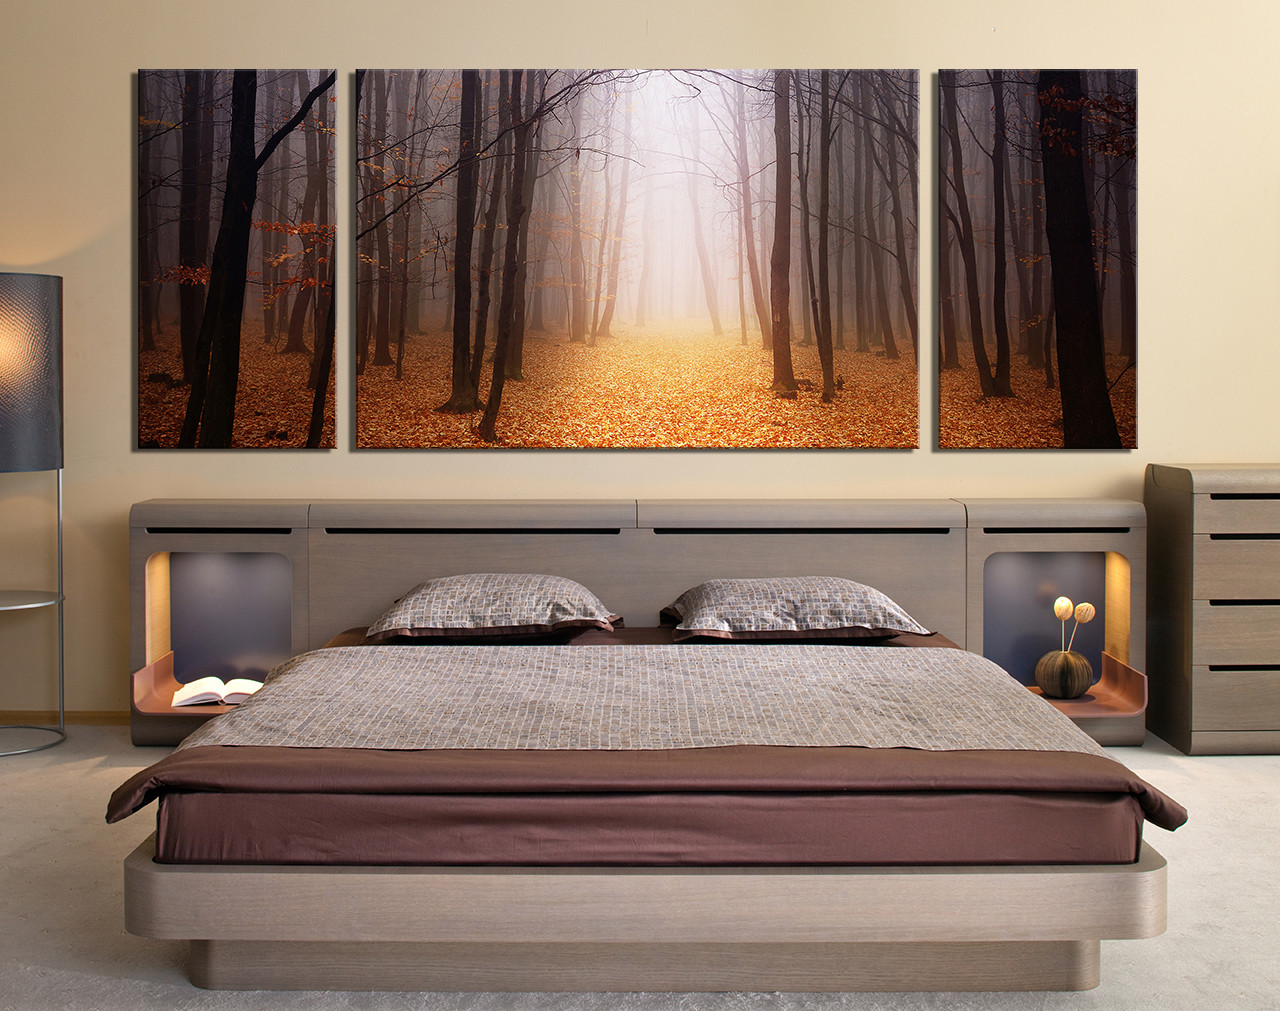 Multi Panel Canvas Wall Art 3 piece large pictures, scenery photo canvas, orange multi panel